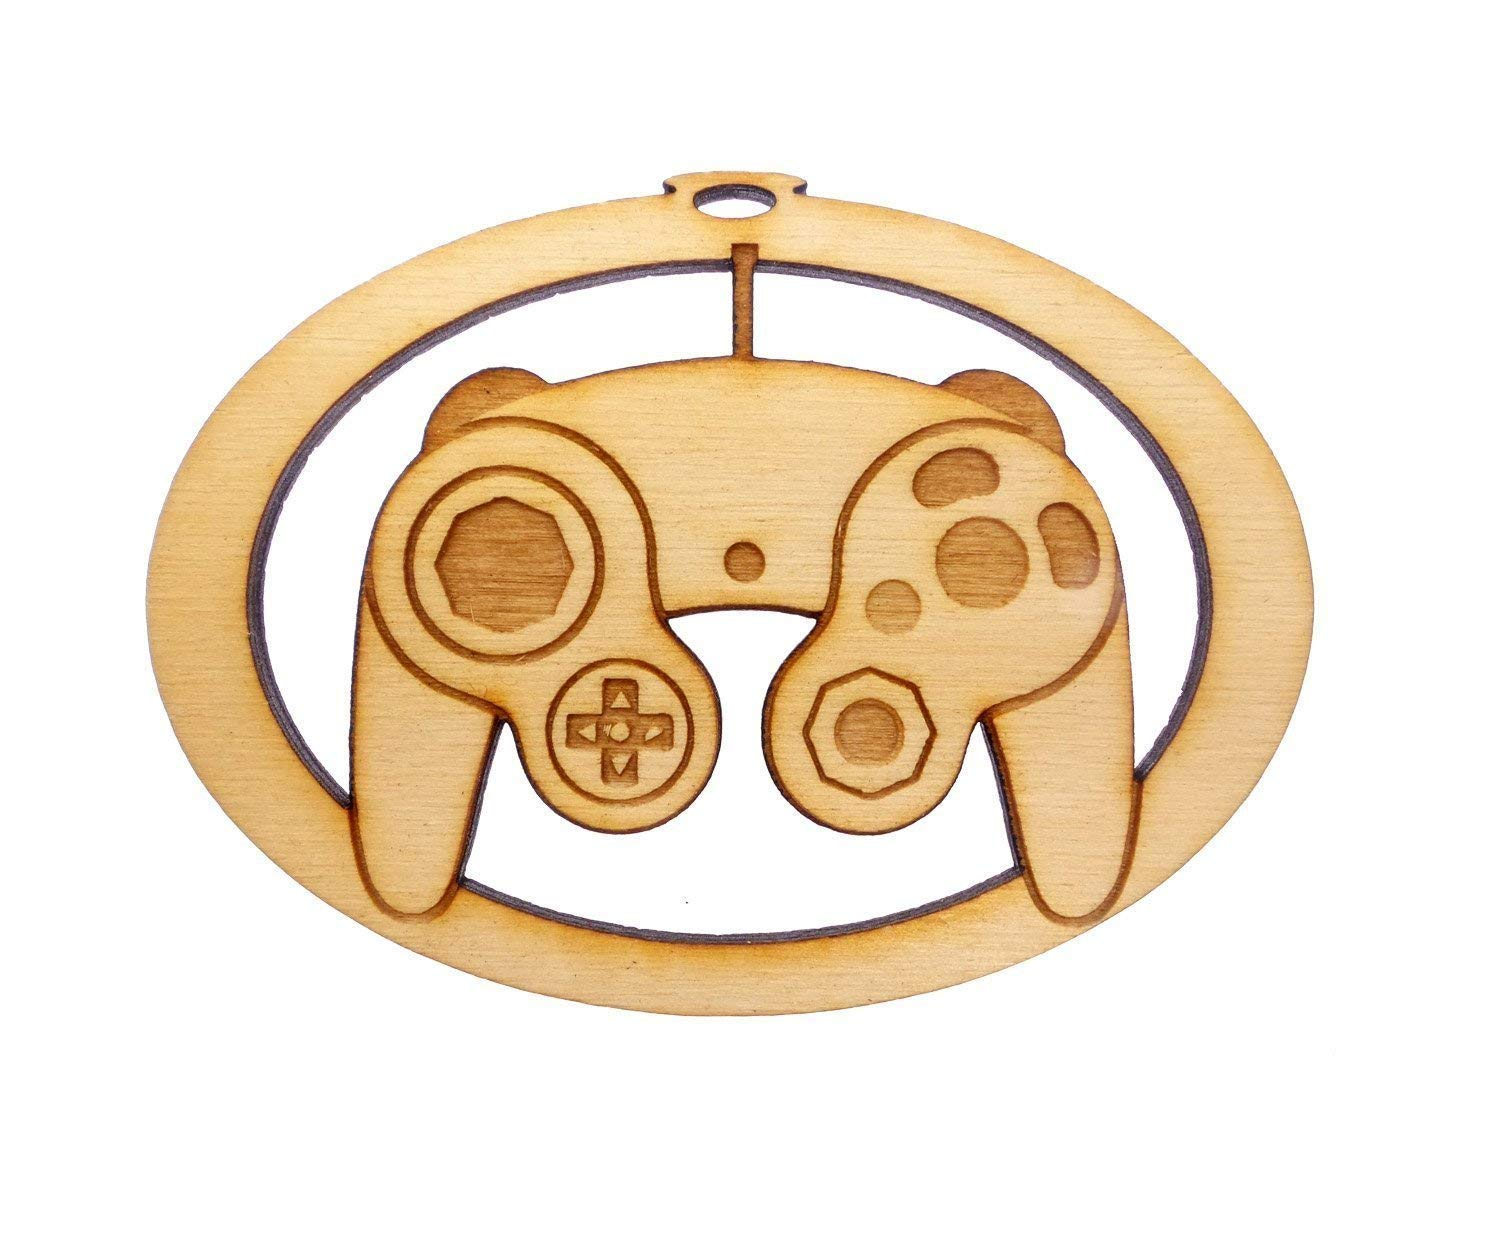 Personalized Classic Game Controller Ornament, Video Game Controller Ornament, Classic Video Game Controller Ornament